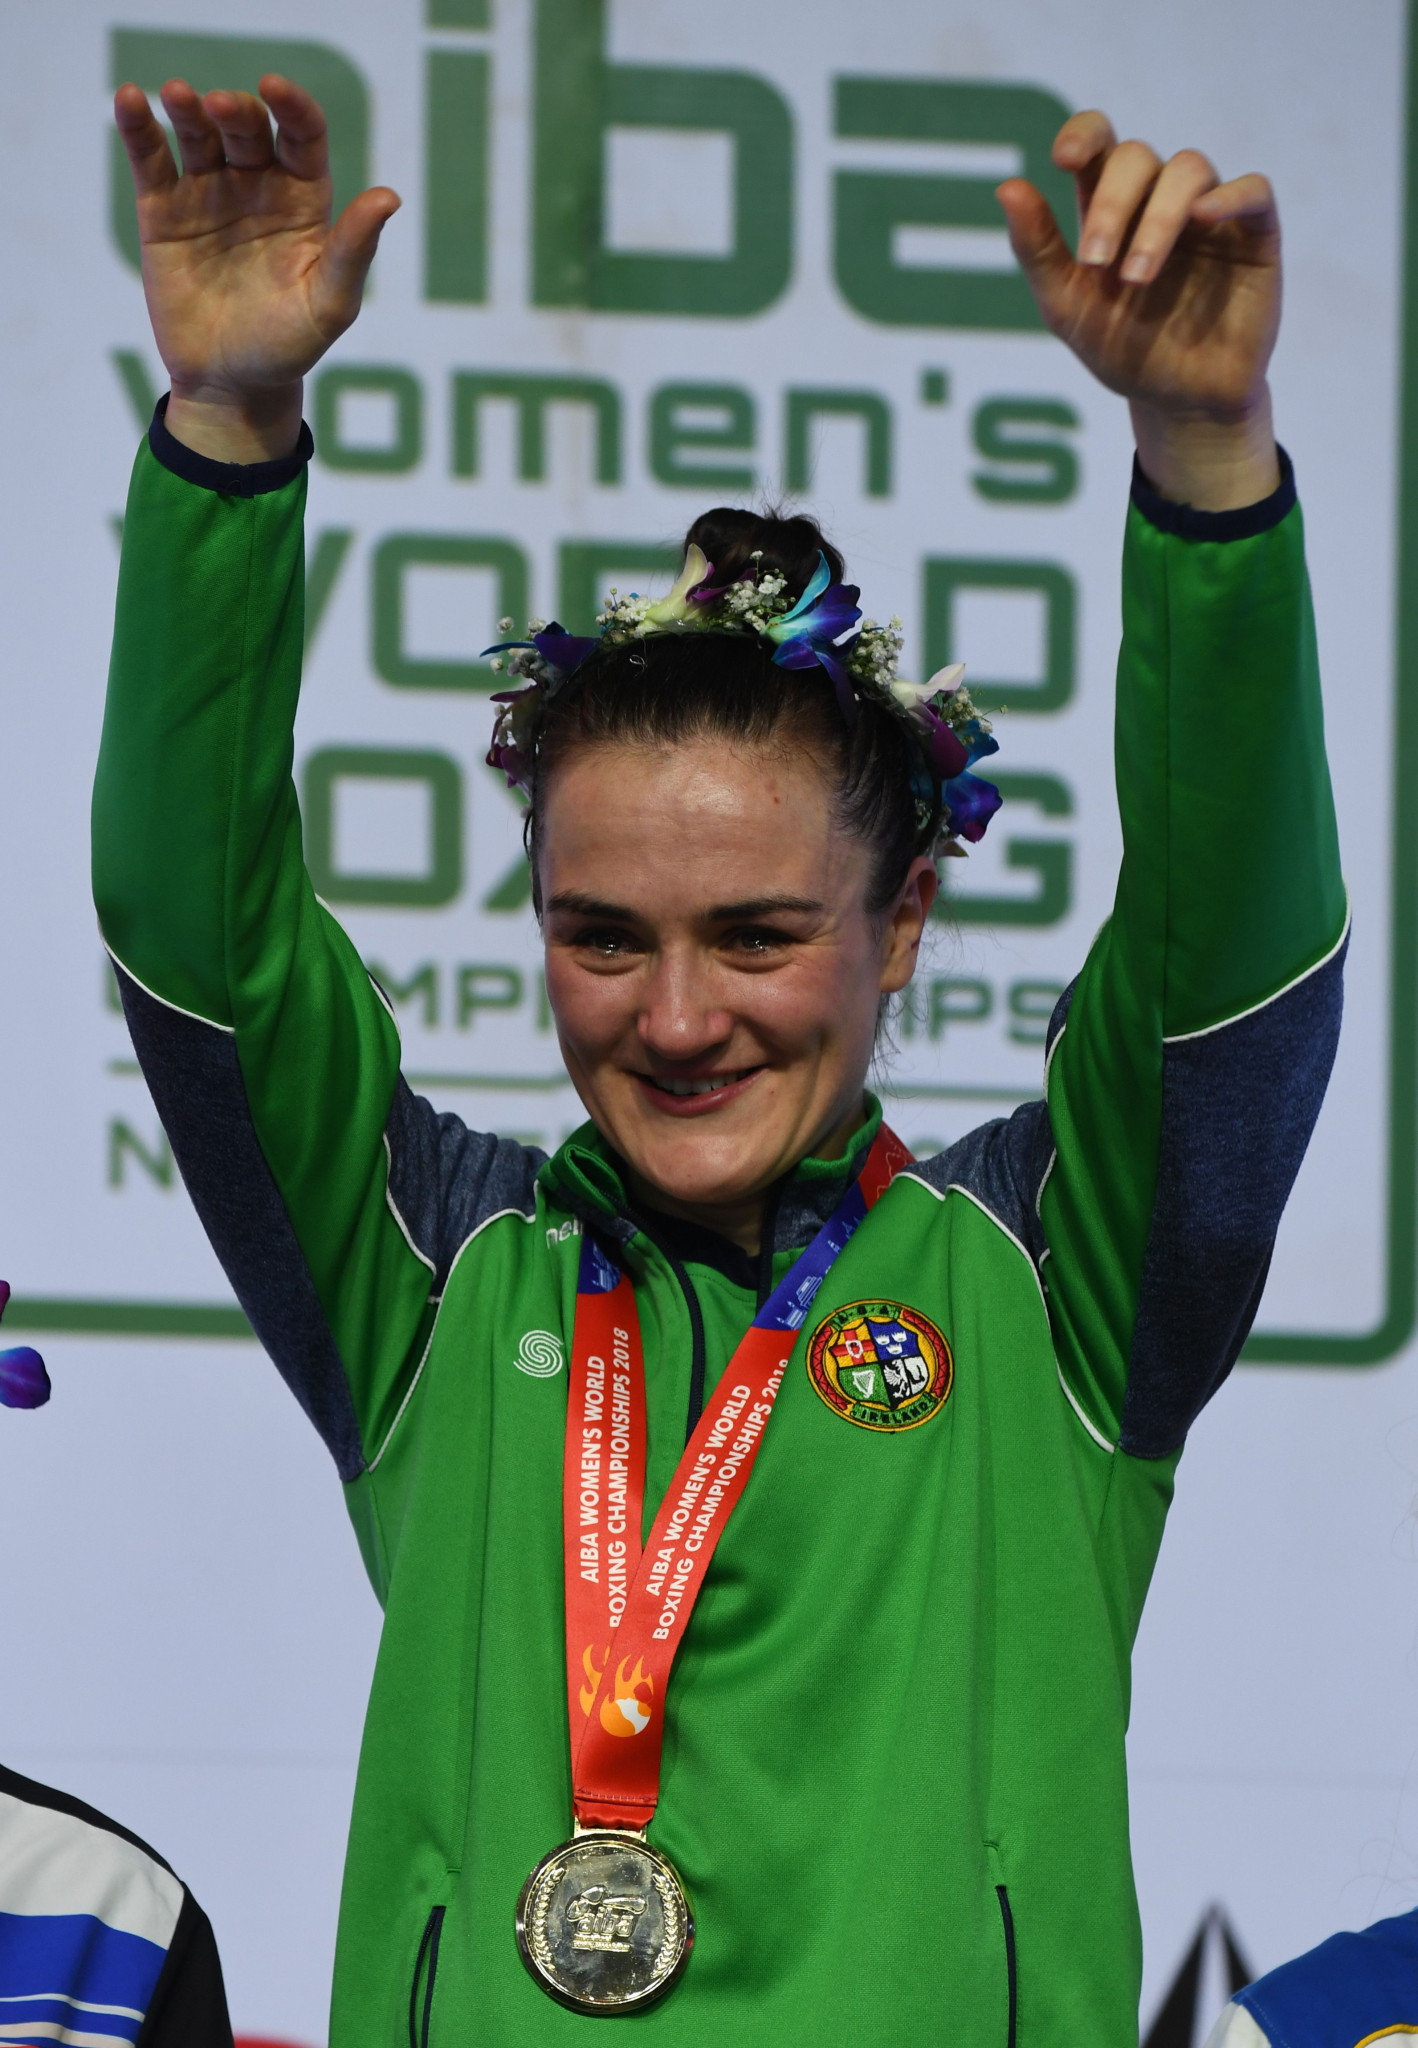 Kellie Harrington is among the 65 Irish athletes selected for the European Games ©Getty Images